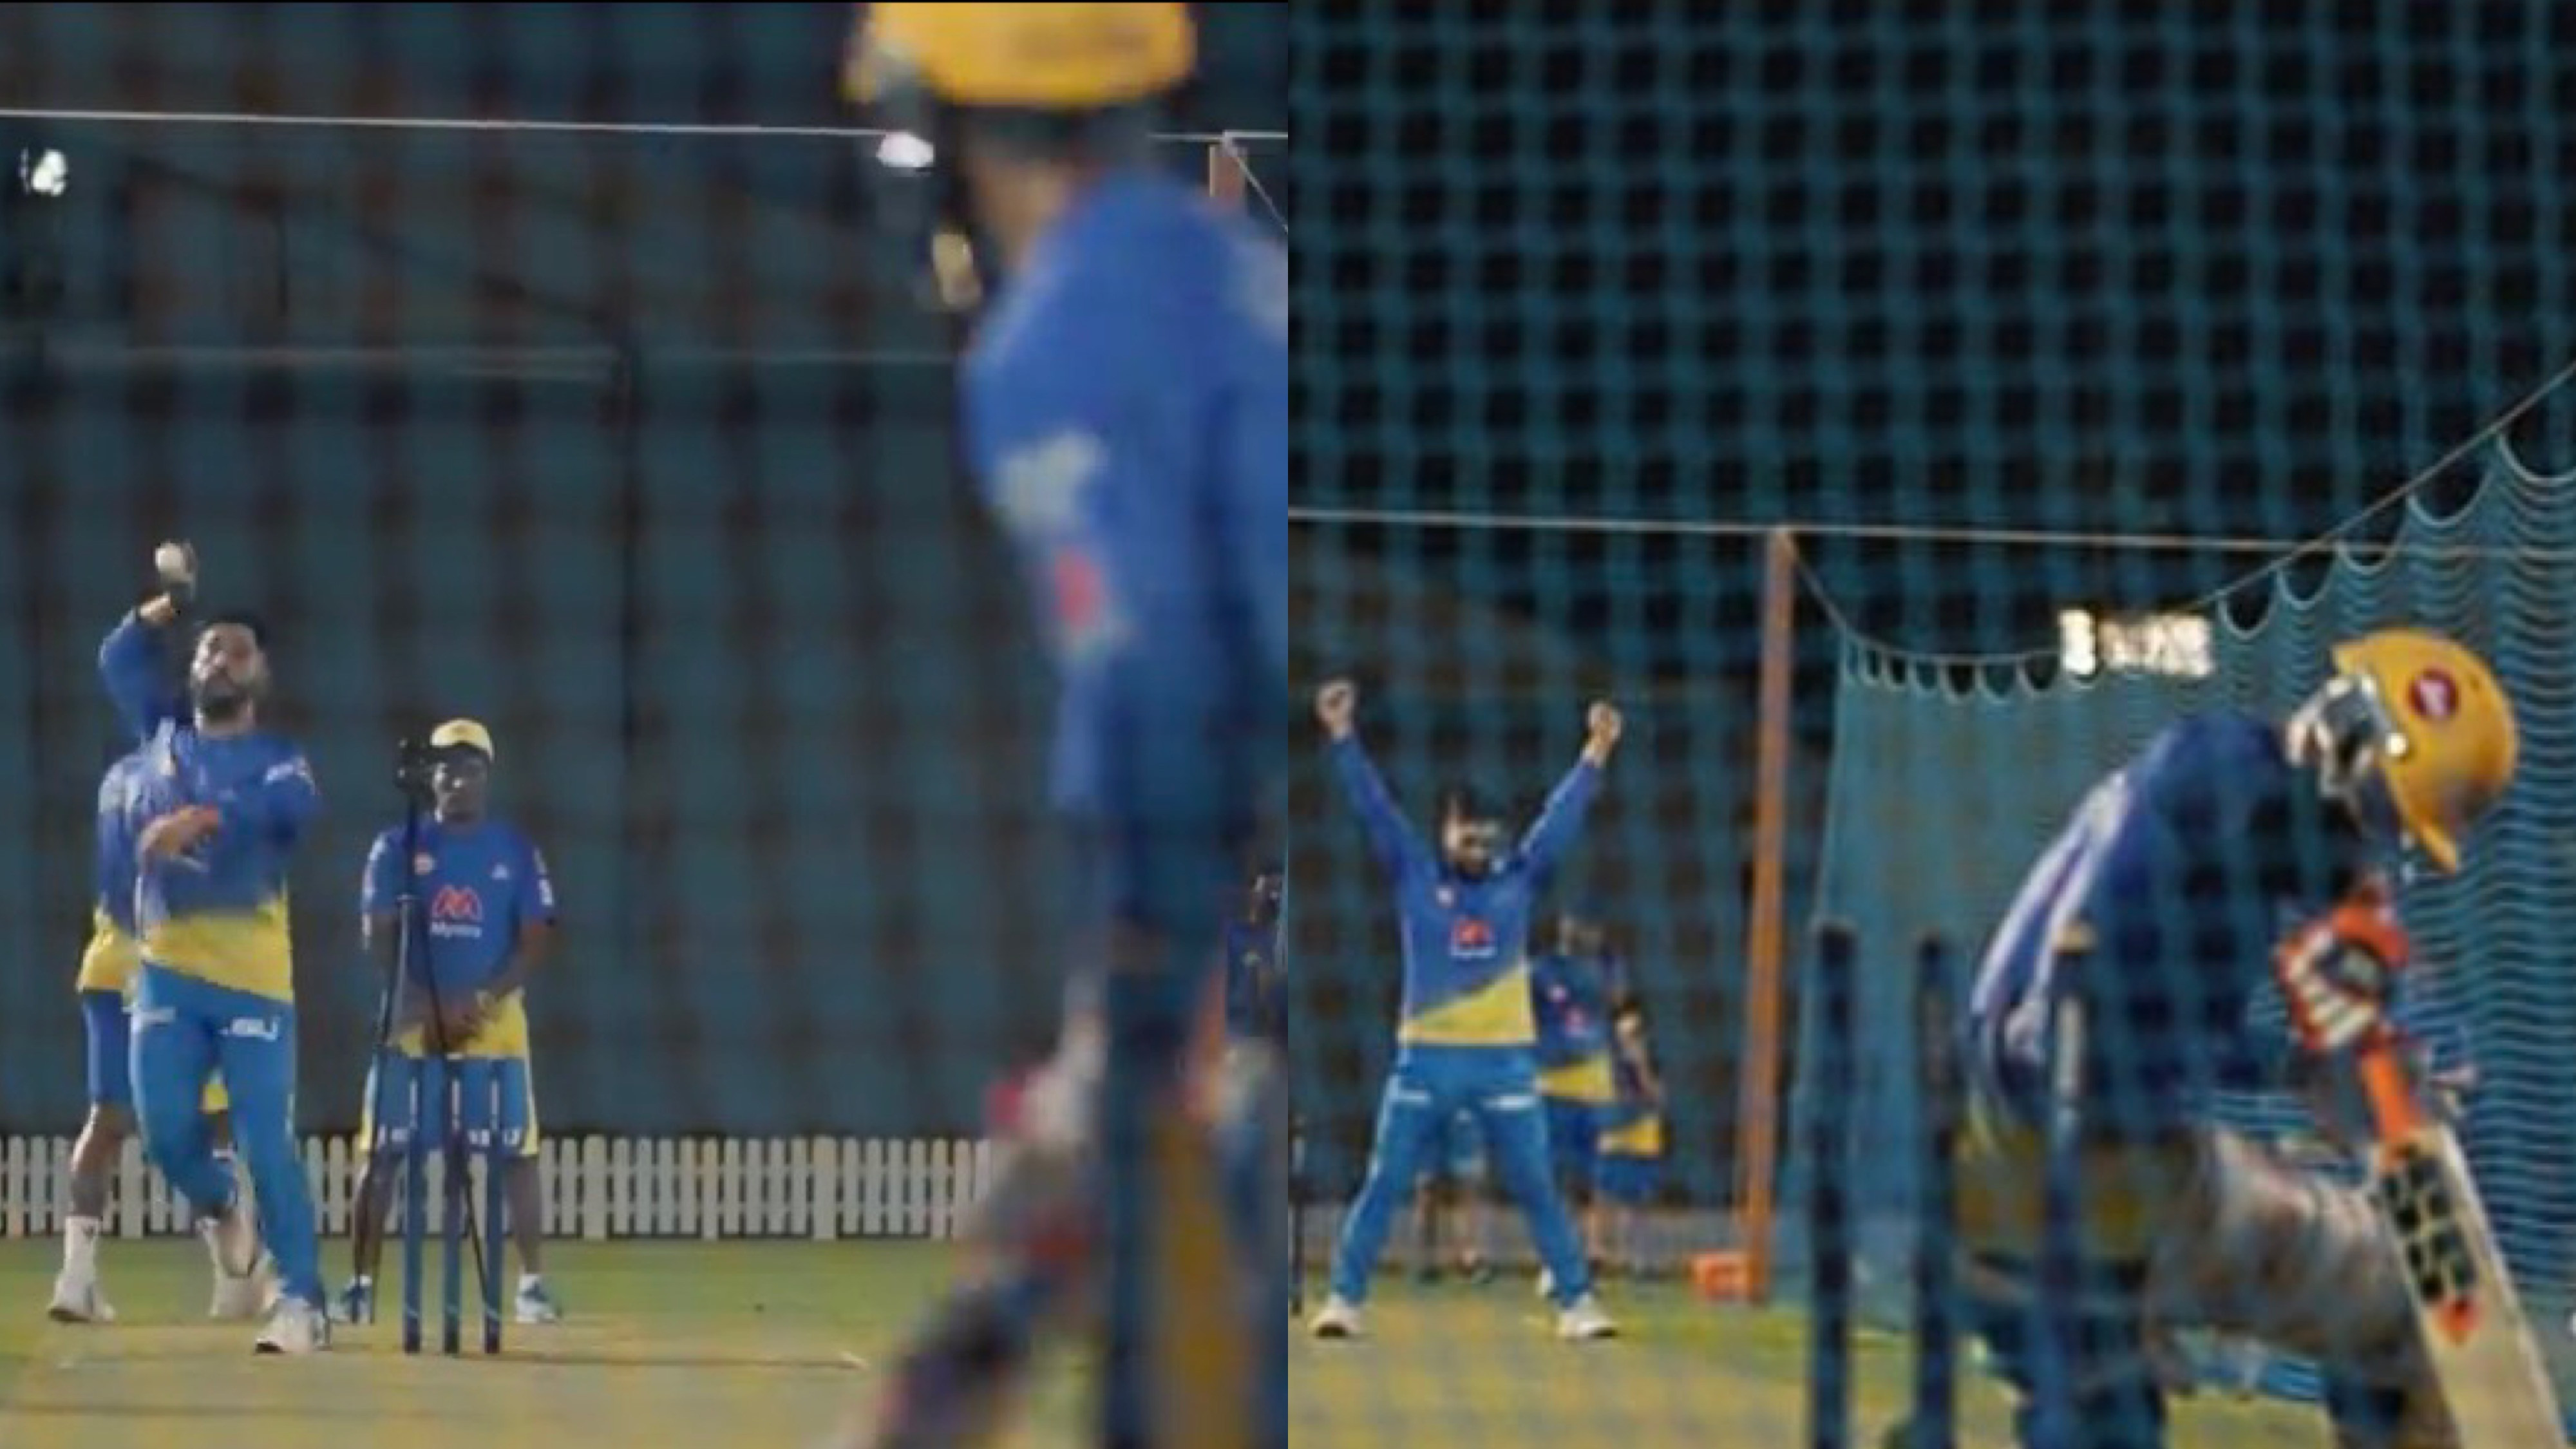 IPL 2021: WATCH - '7 vs 8' MS Dhoni and Ravindra Jadeja face-off at the nets